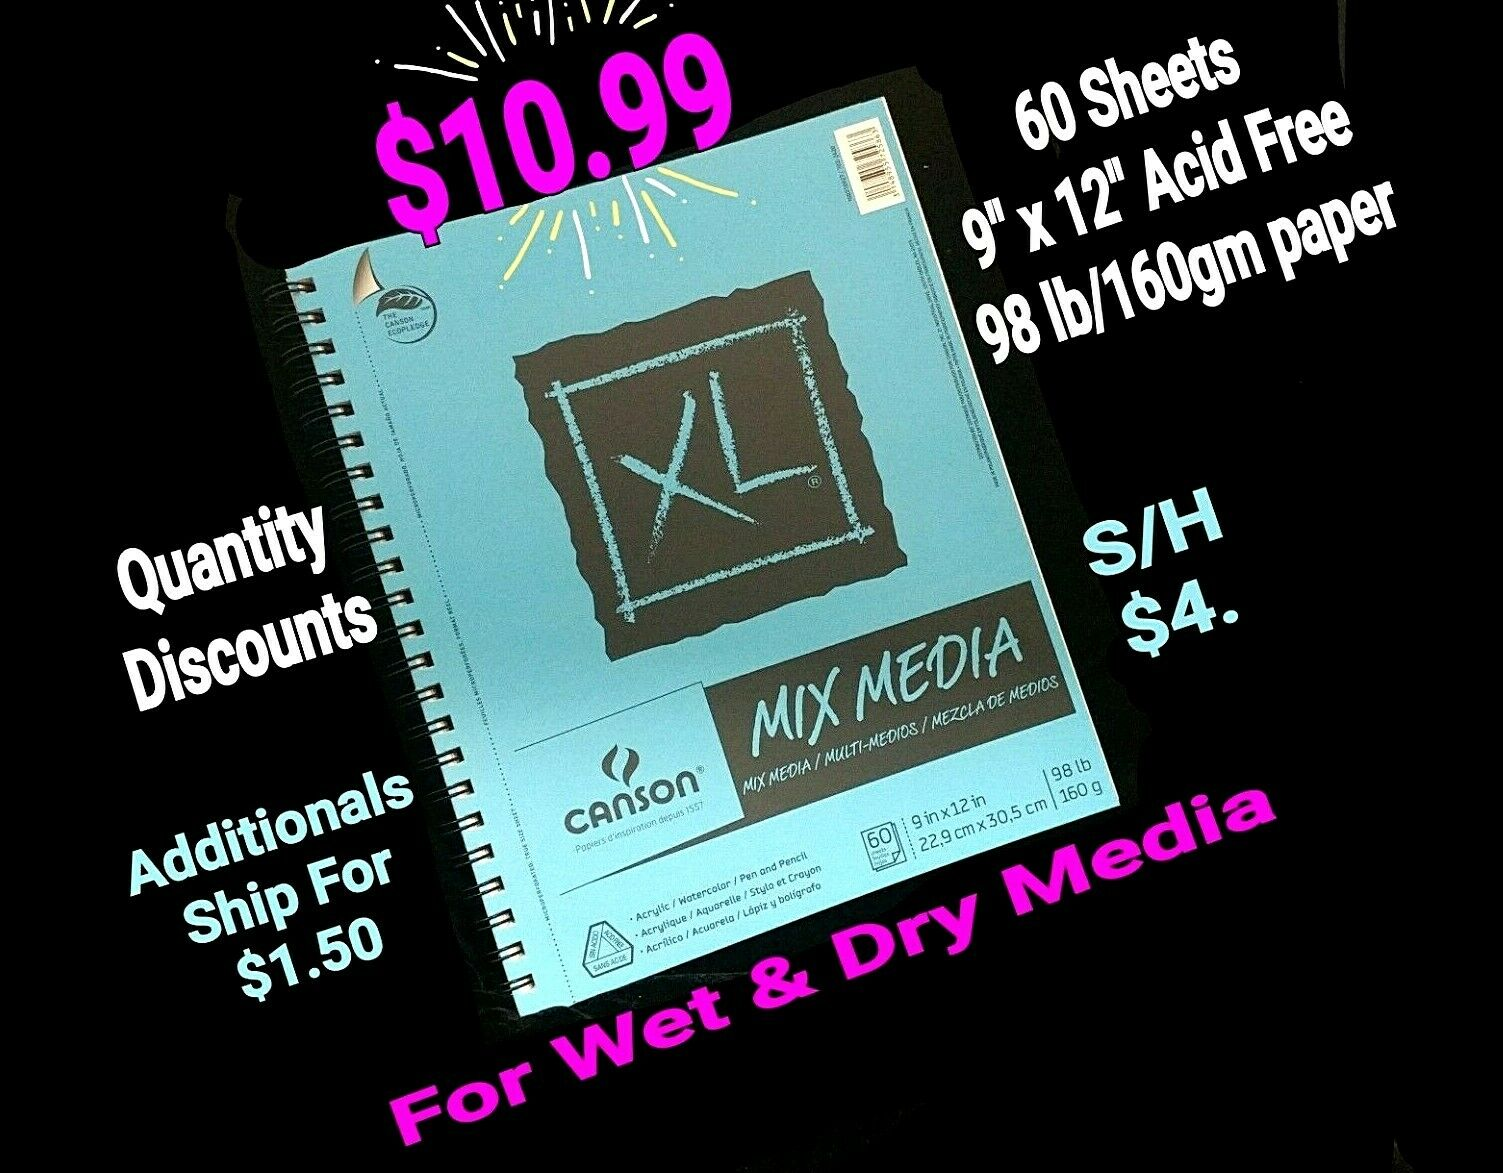 11 x 14 Inch Canson Artist Series Mix Media Paper Pad for Wet or Dry Media 138 Pound 20 Sheets Dual Surface with Fine and Medium Textures Тwo Рack